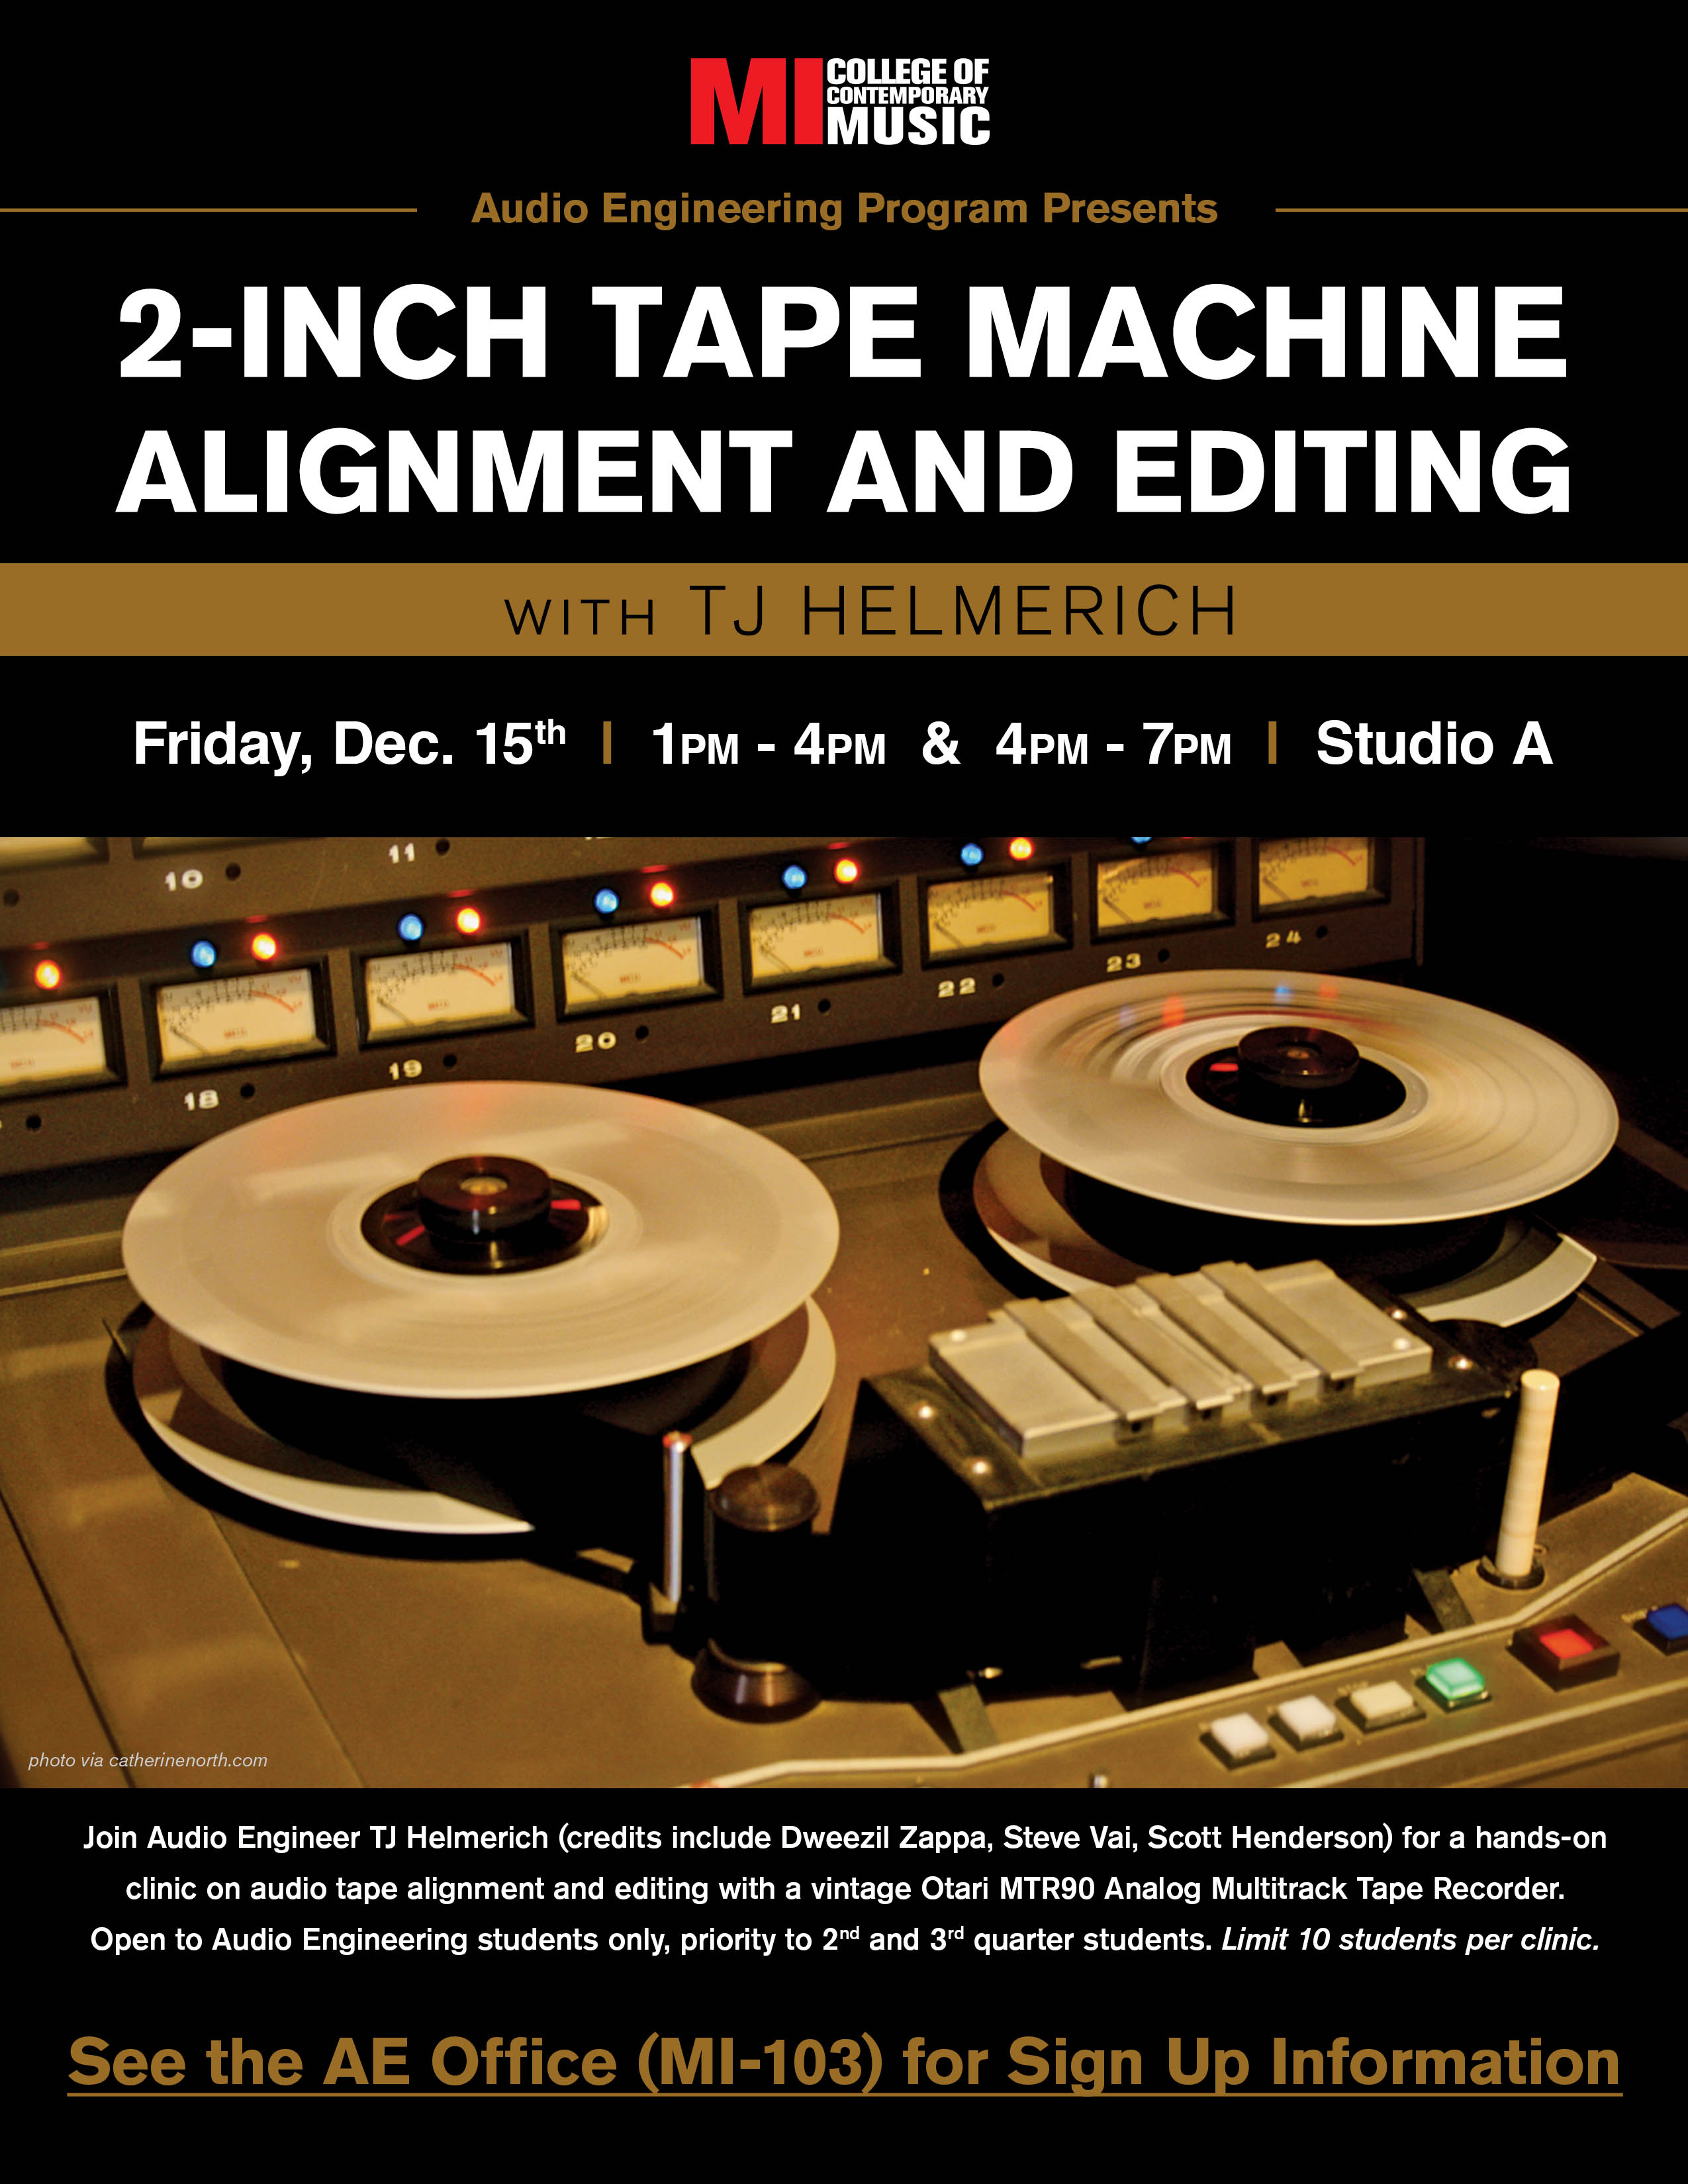 2 INCH TAPE MACHINE ALIGNMENT AND EDITING WITH TJ HELMERCH FRIDAY DECEMBER 15, 2017 1-4PM AND 4-7PM